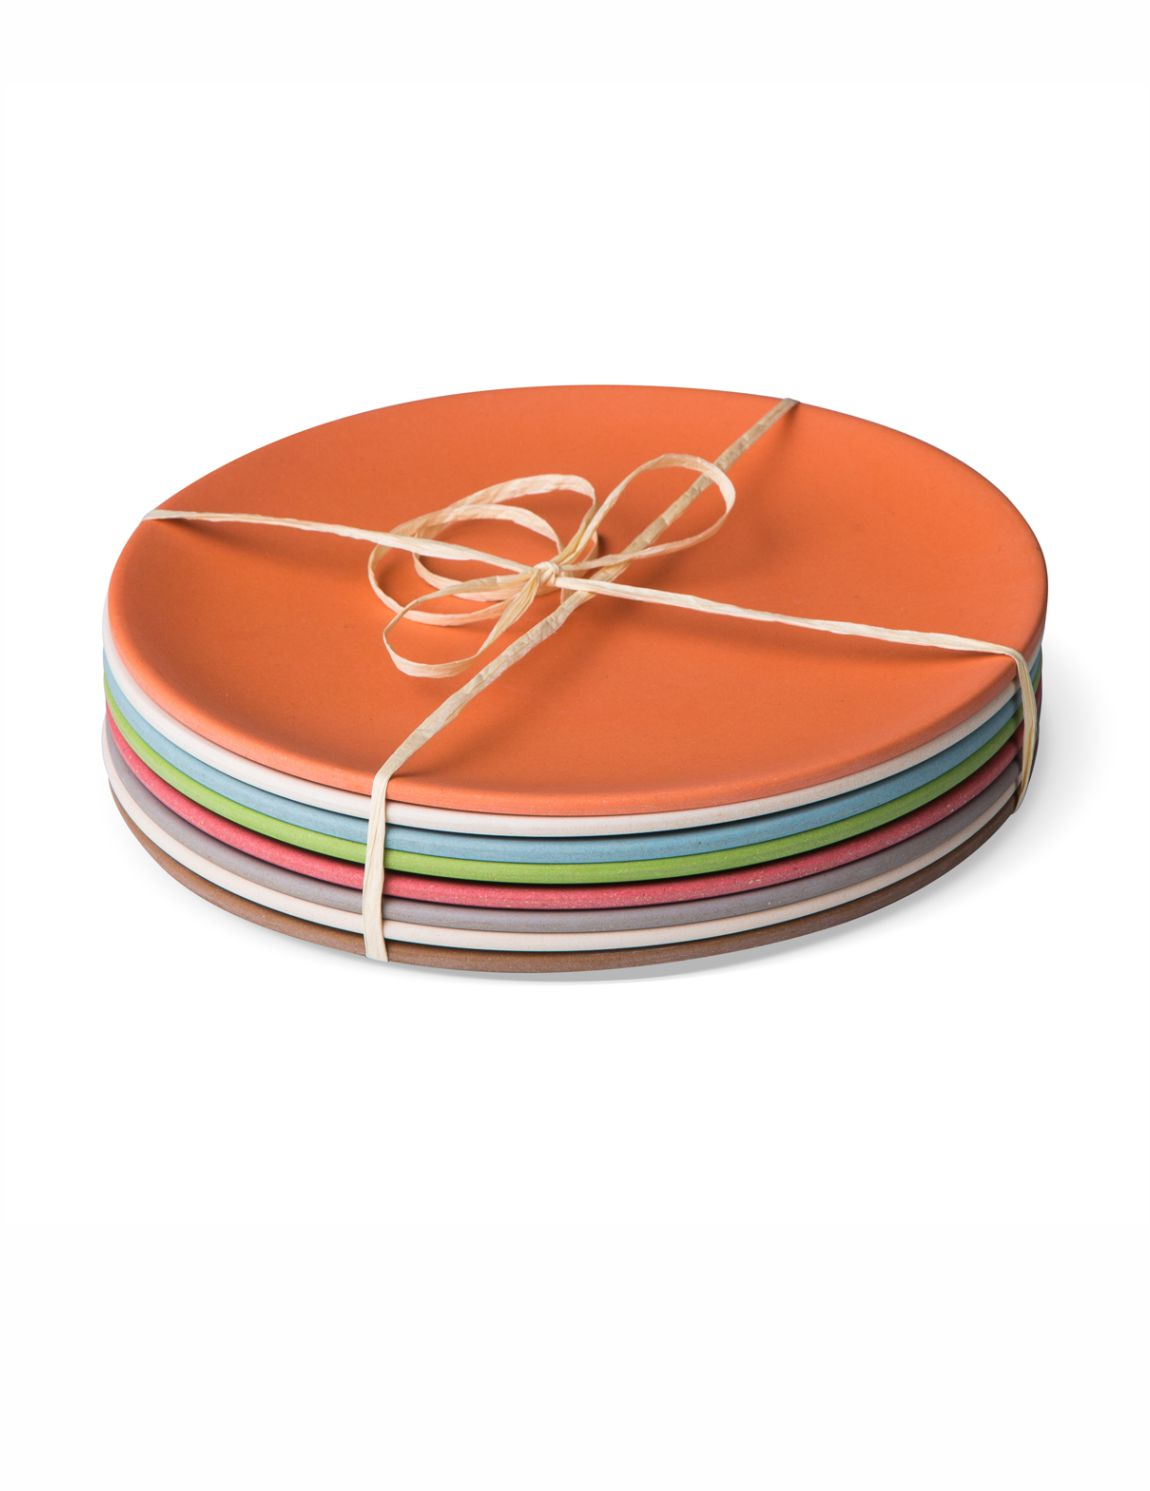 Bamboo dinner plates 26cm - set of 8 mixed colours